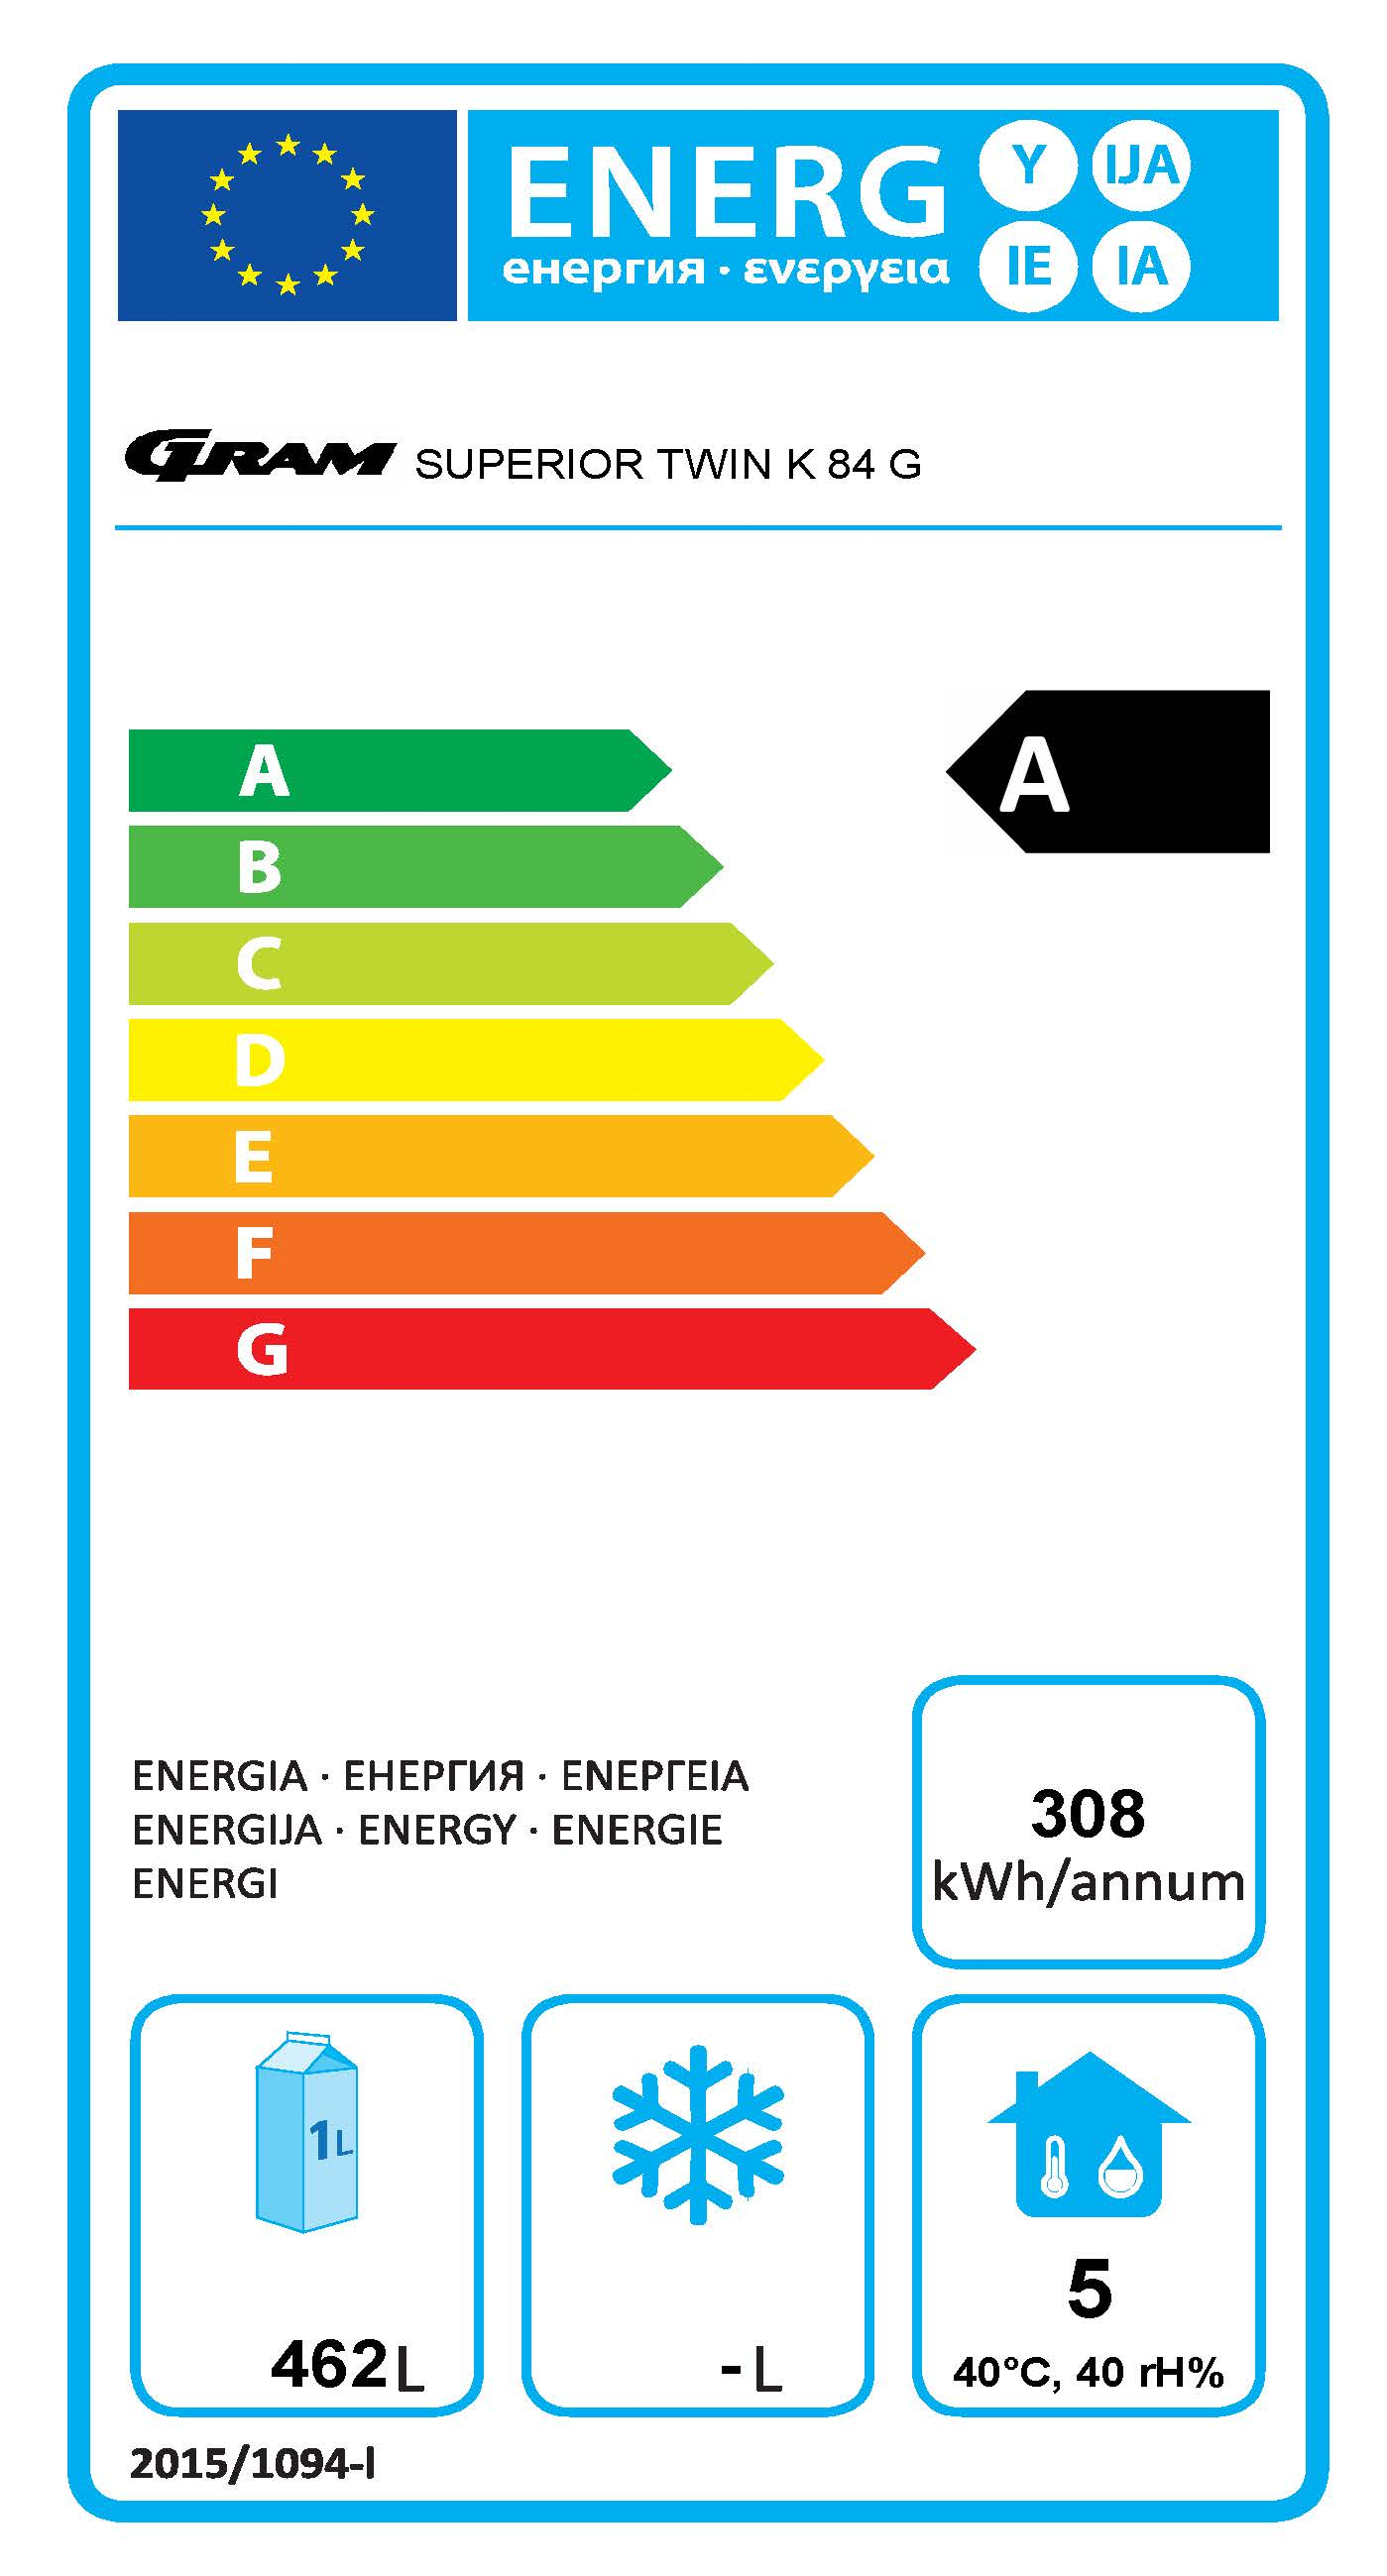 SUPERIOR TWIN K 84 CCG C1 4S 2/1 GN Upright Refrigerator  Energy Rating